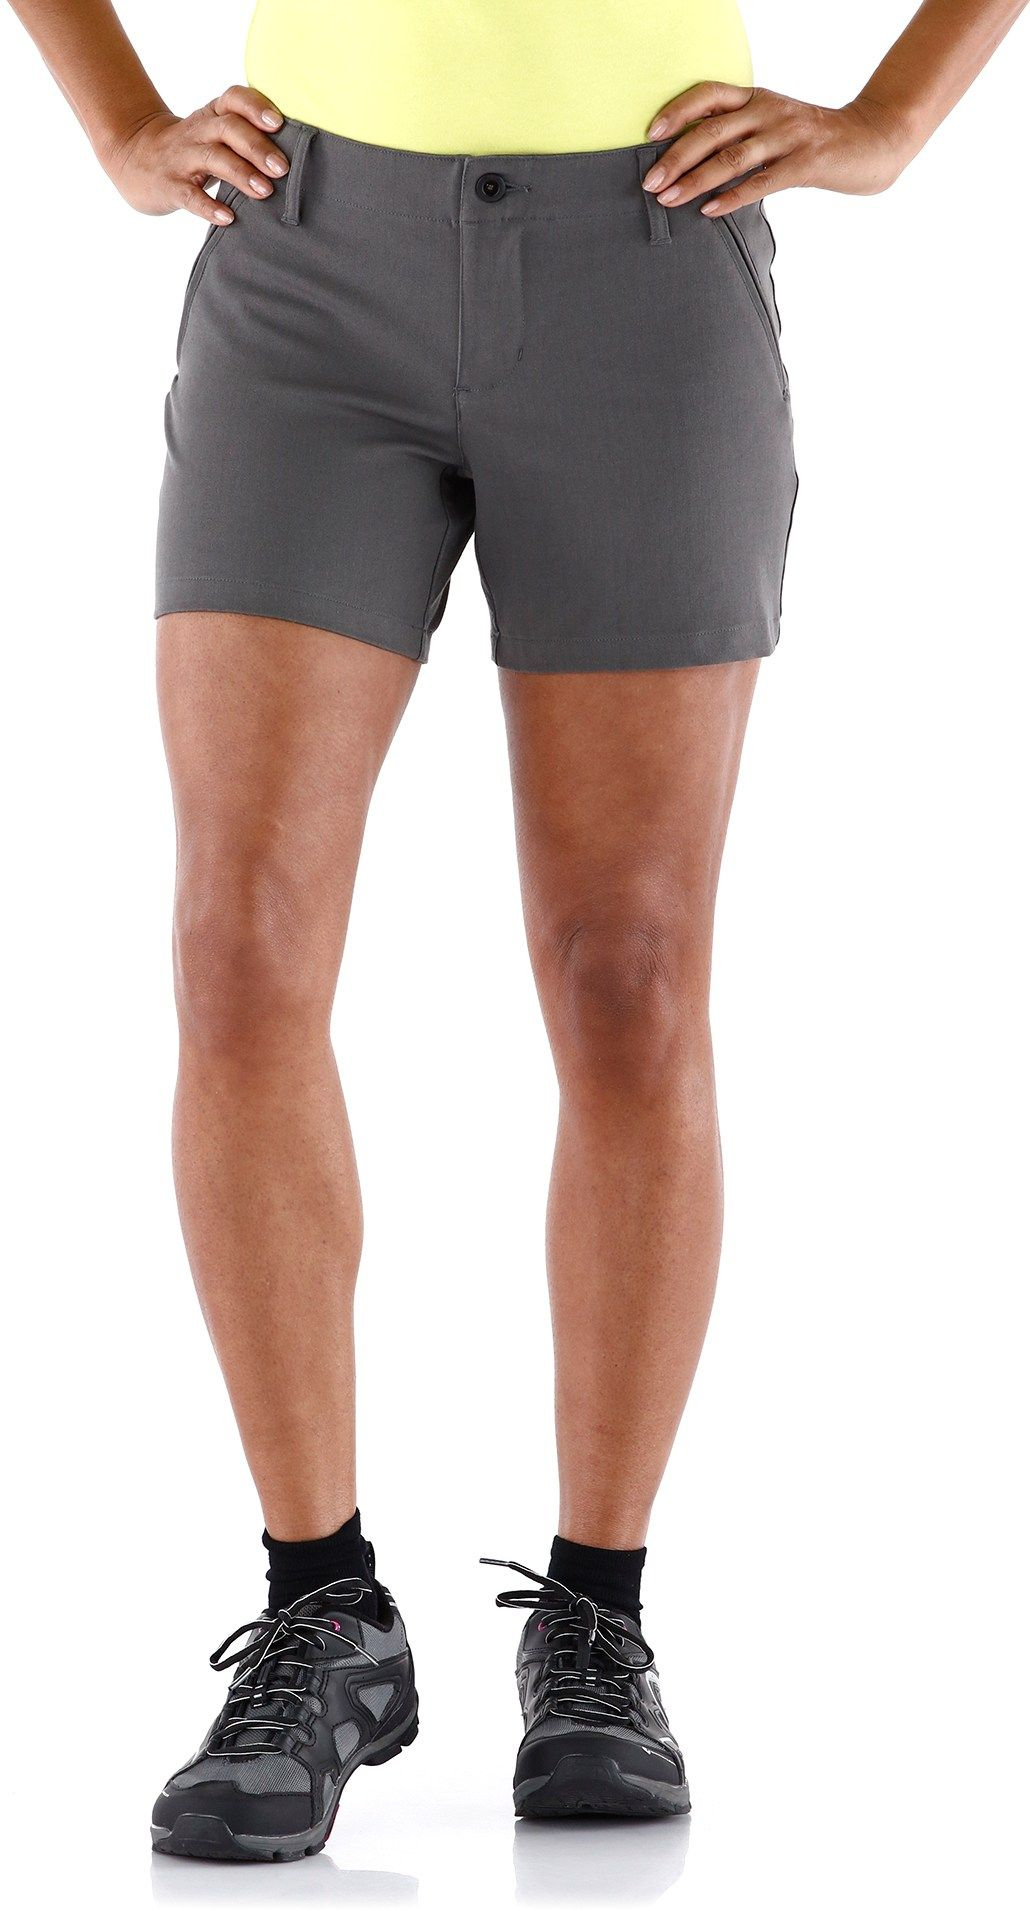 Giro Female Mobility Bike Shorts - Women s - Classic Fit  051682b258